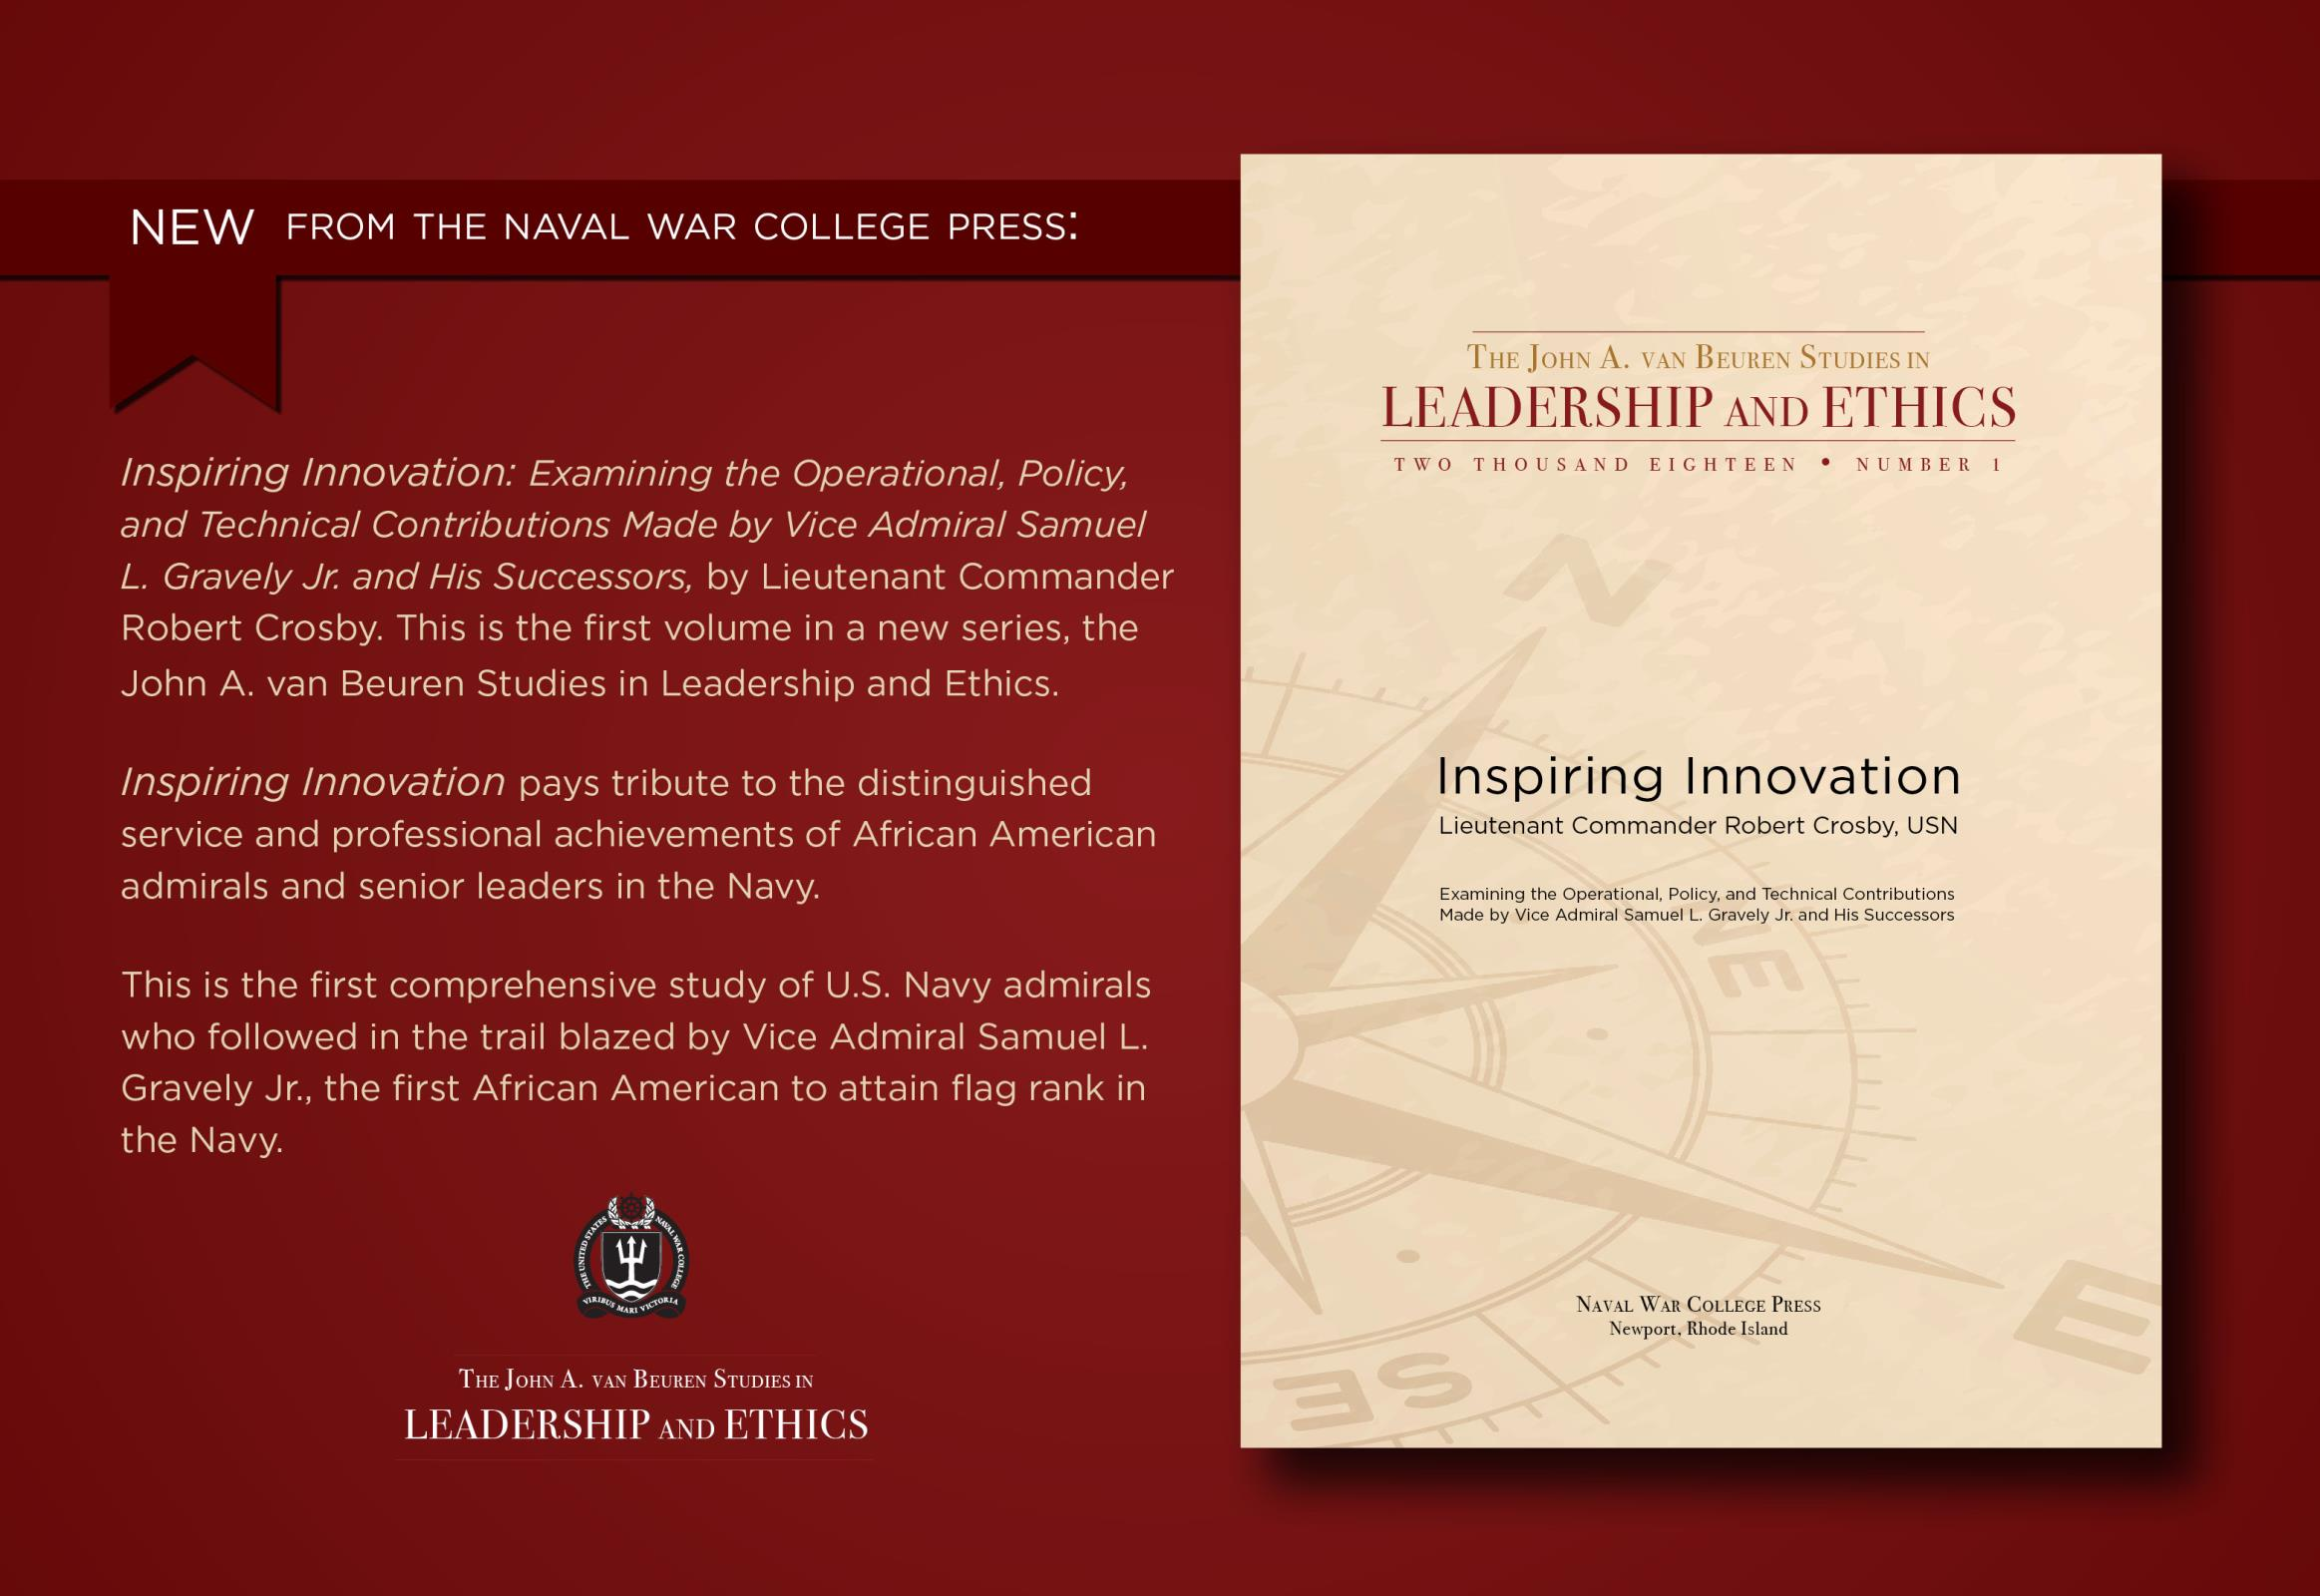 Inspiring Innovations cover image